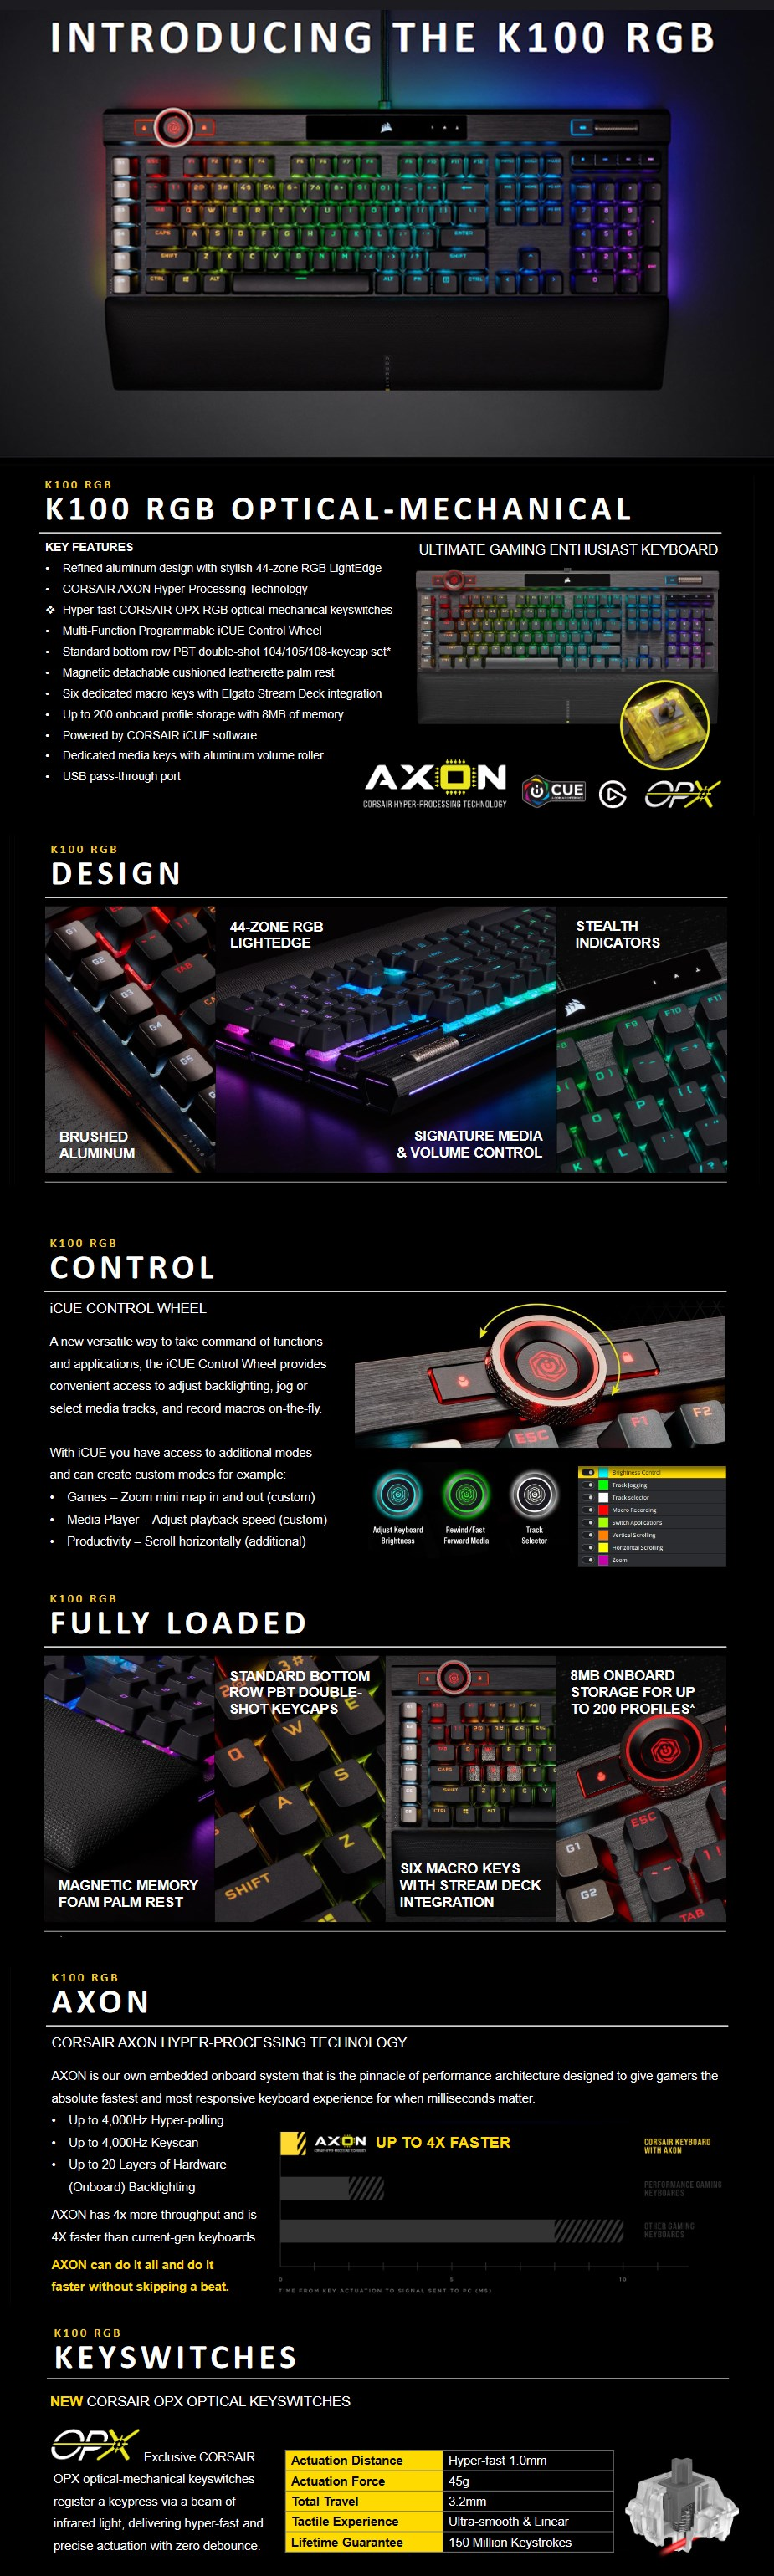 Corsair K100 RGB Optical Mechanical Gaming Keyboard - OPX Switches - Desktop Overview 1